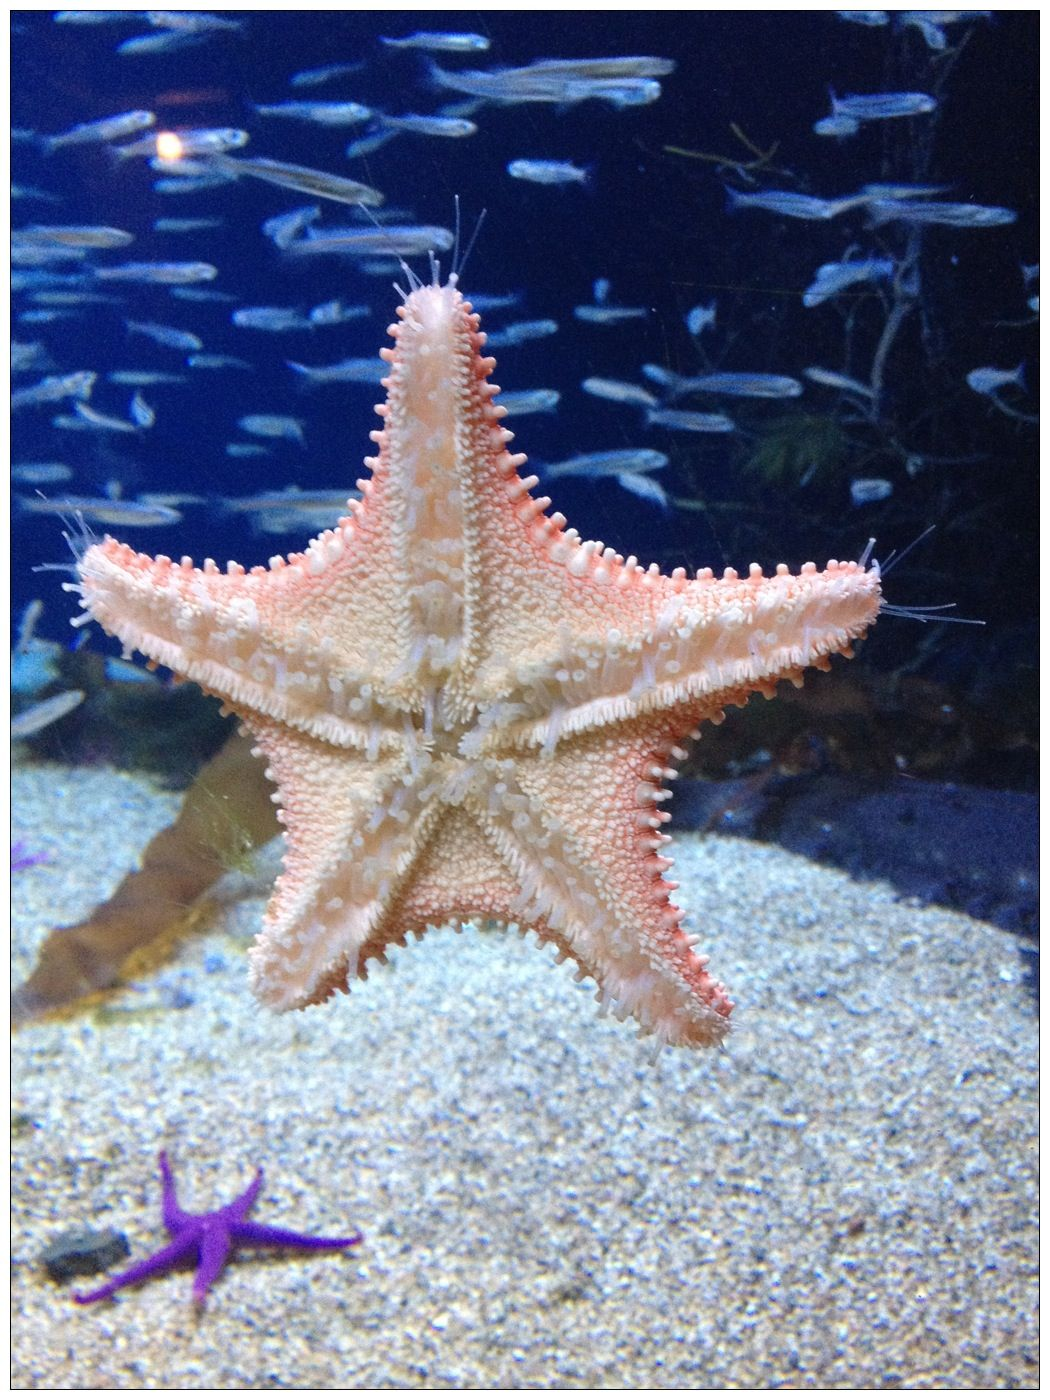 I took this pic at the New England Aquarium yesterday and it turned out great :)!